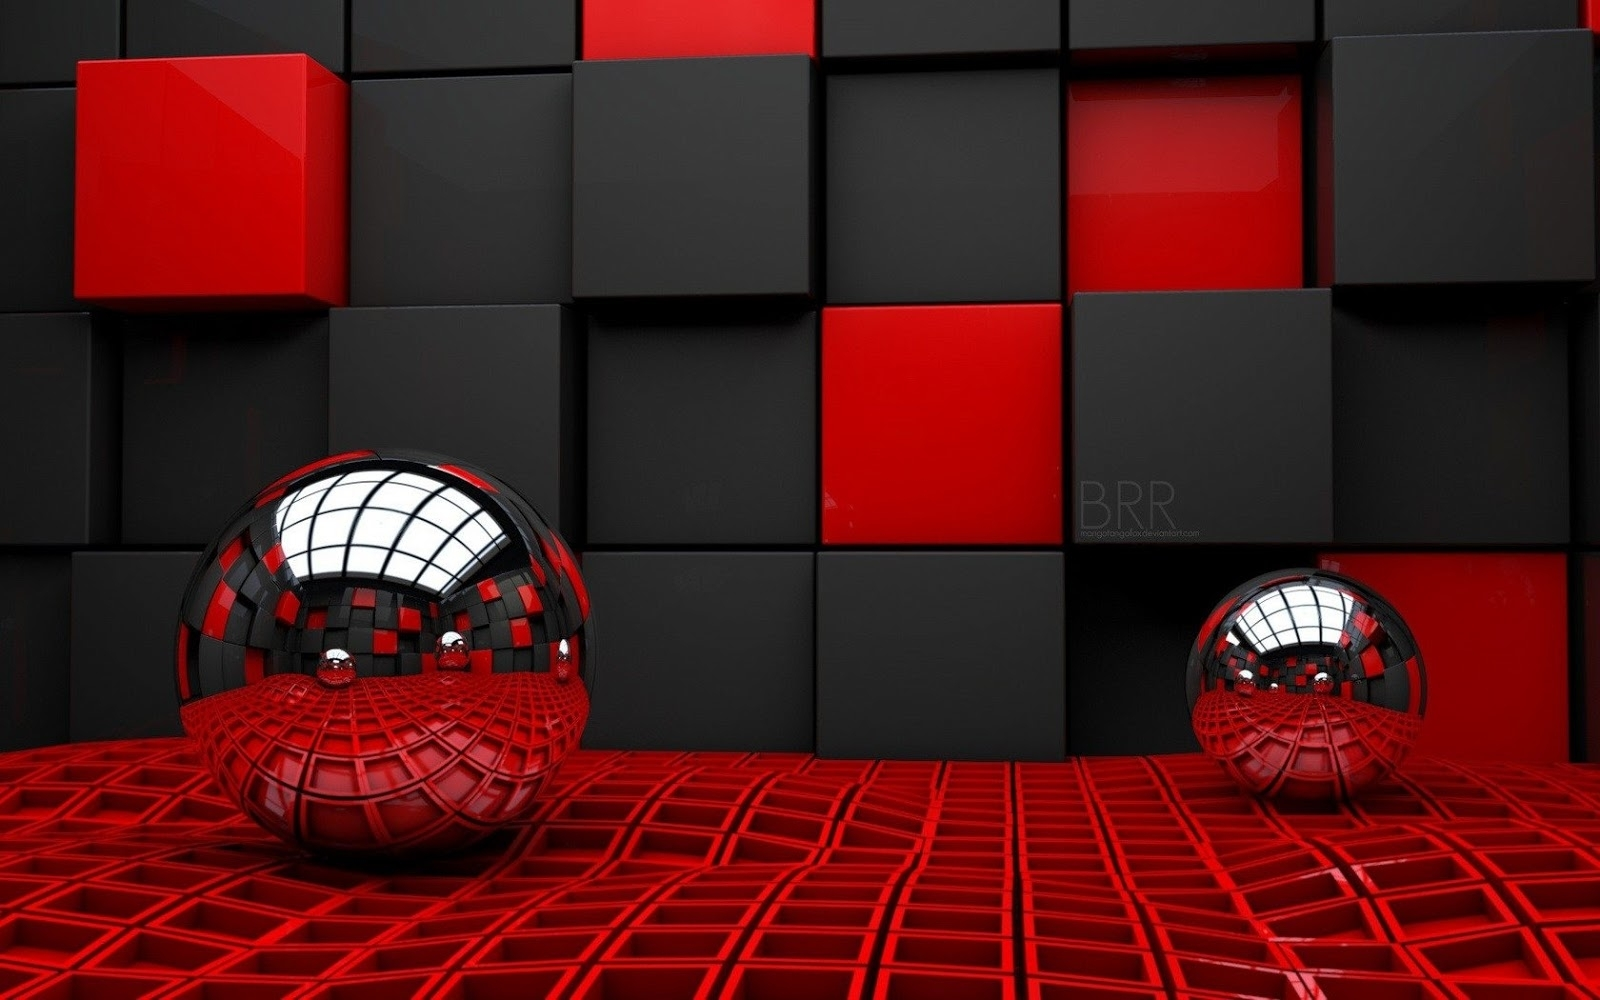 10 new cool 3d background pictures full hd 1080p for pc desktop